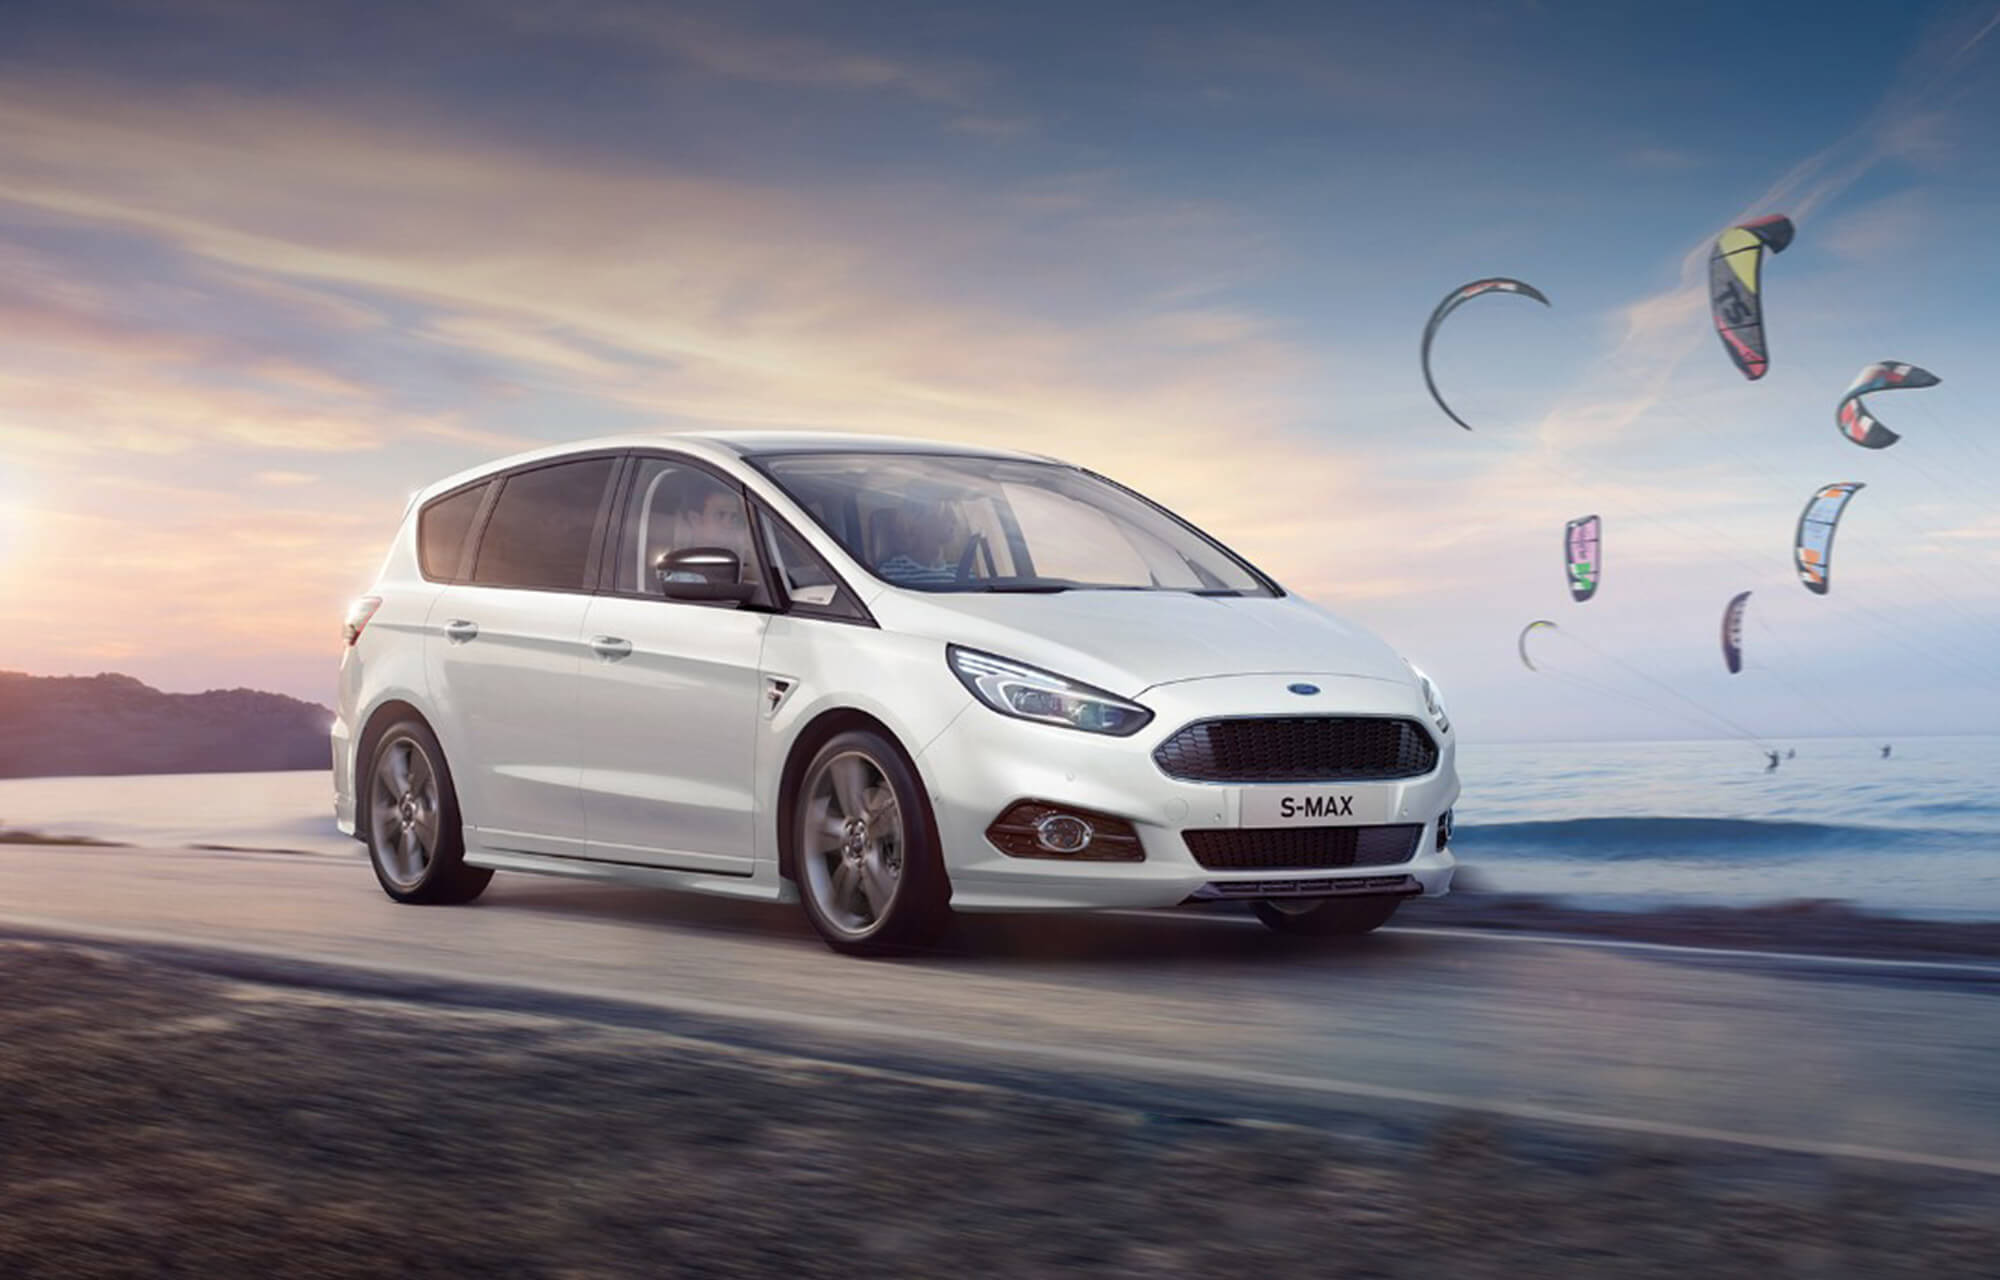 Ford S-Max at Porter Ford, Sligo